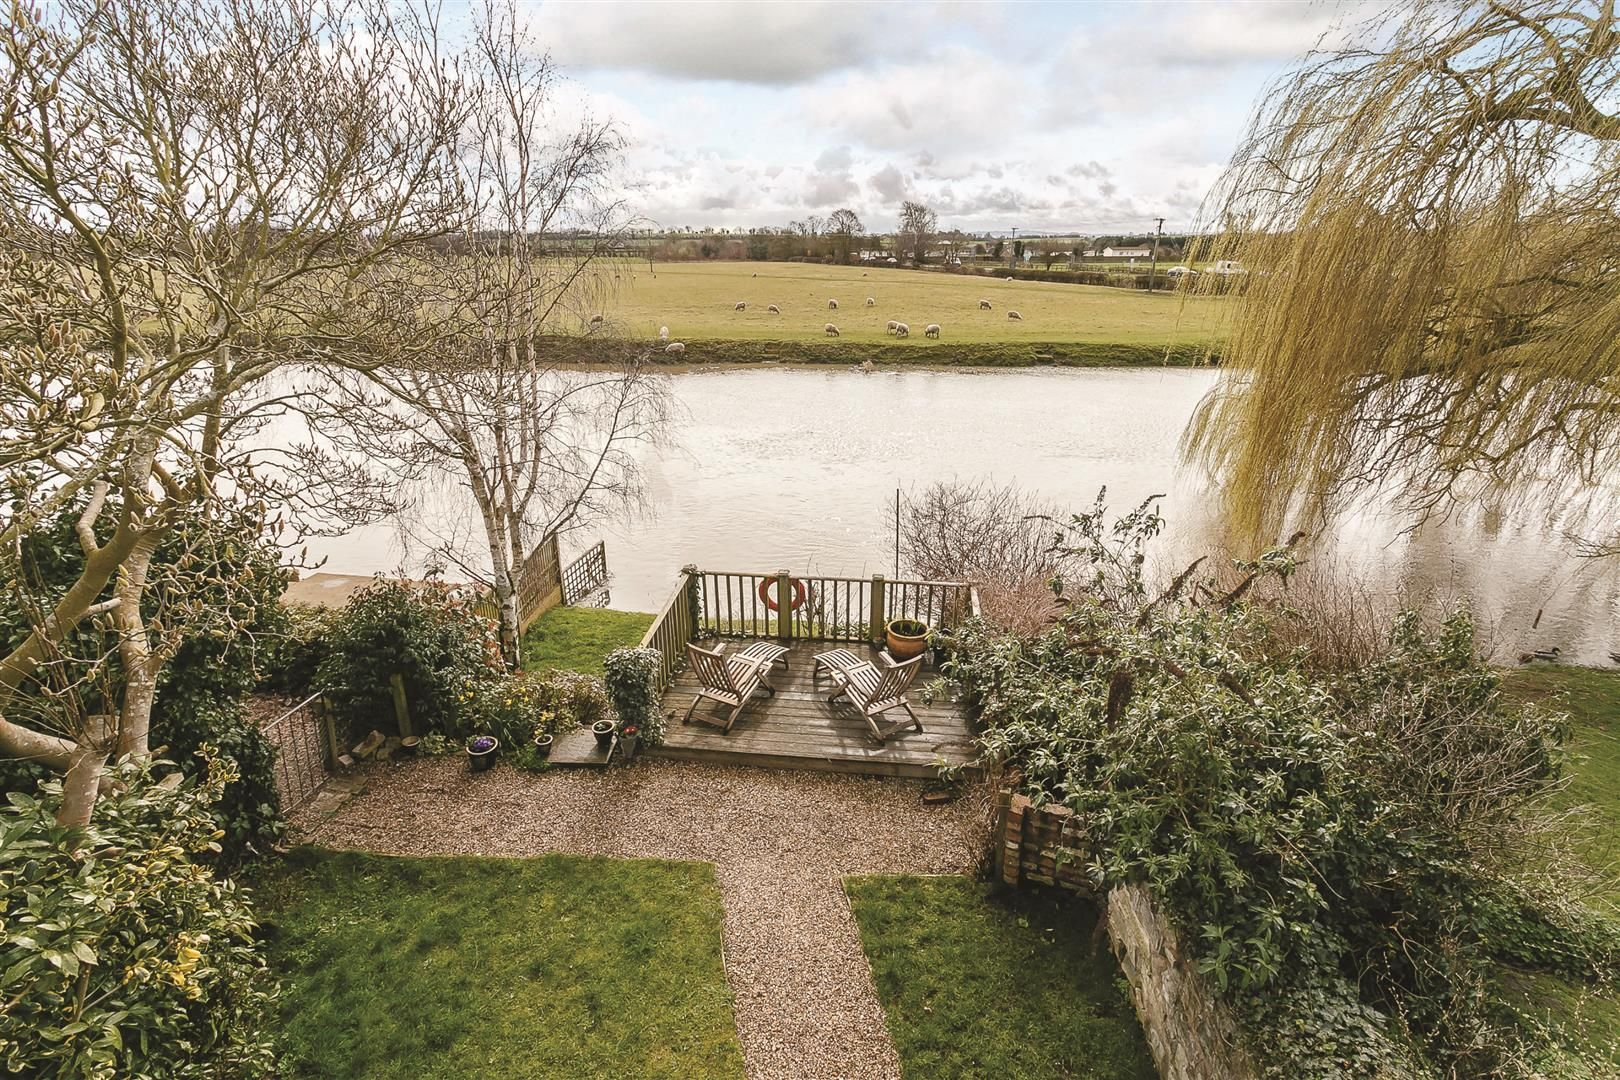 Splashing out: 6 of the best beautiful riverside homes for sale